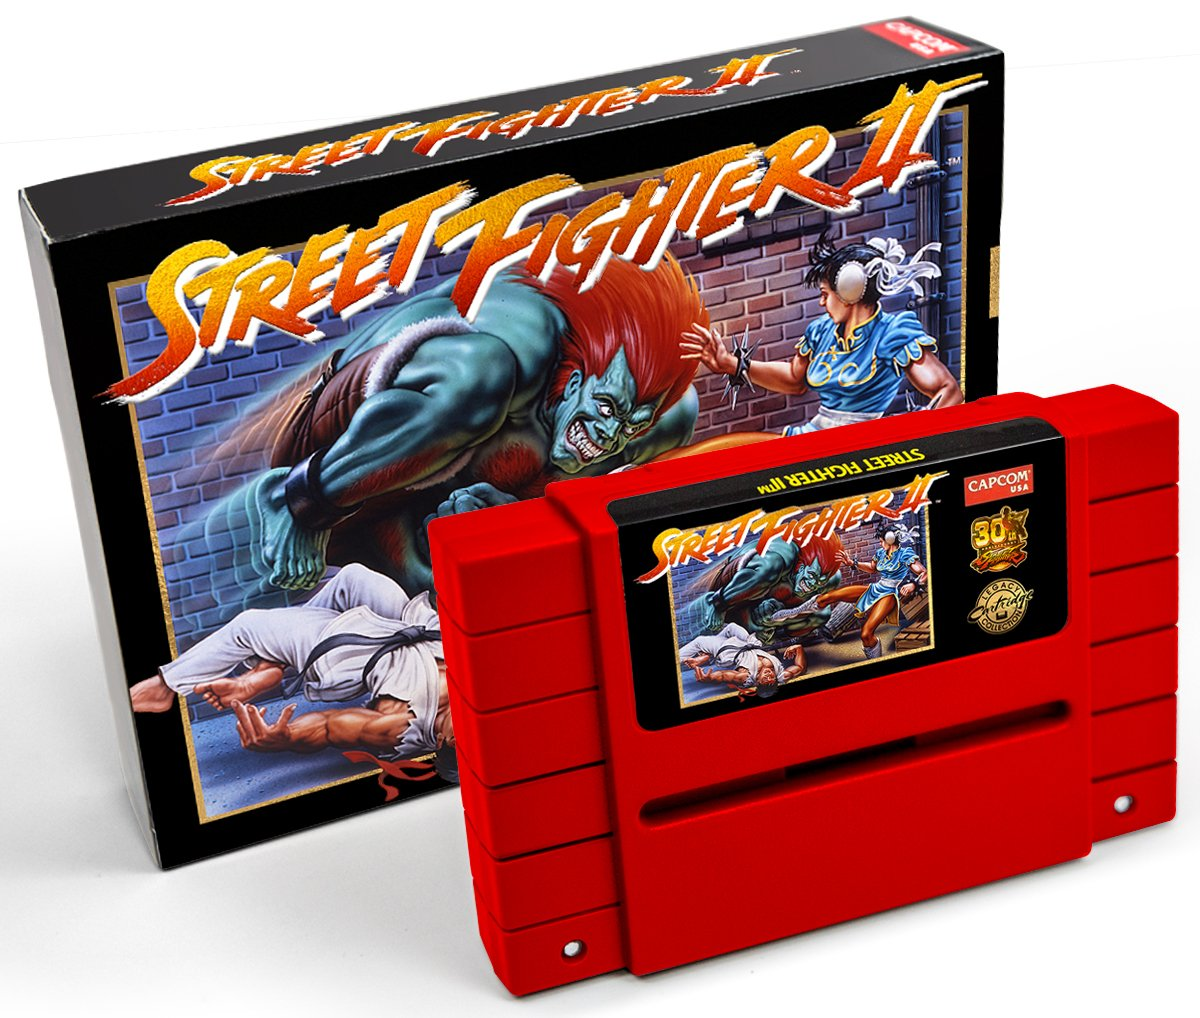 Street Fighter 2 SNES official repro